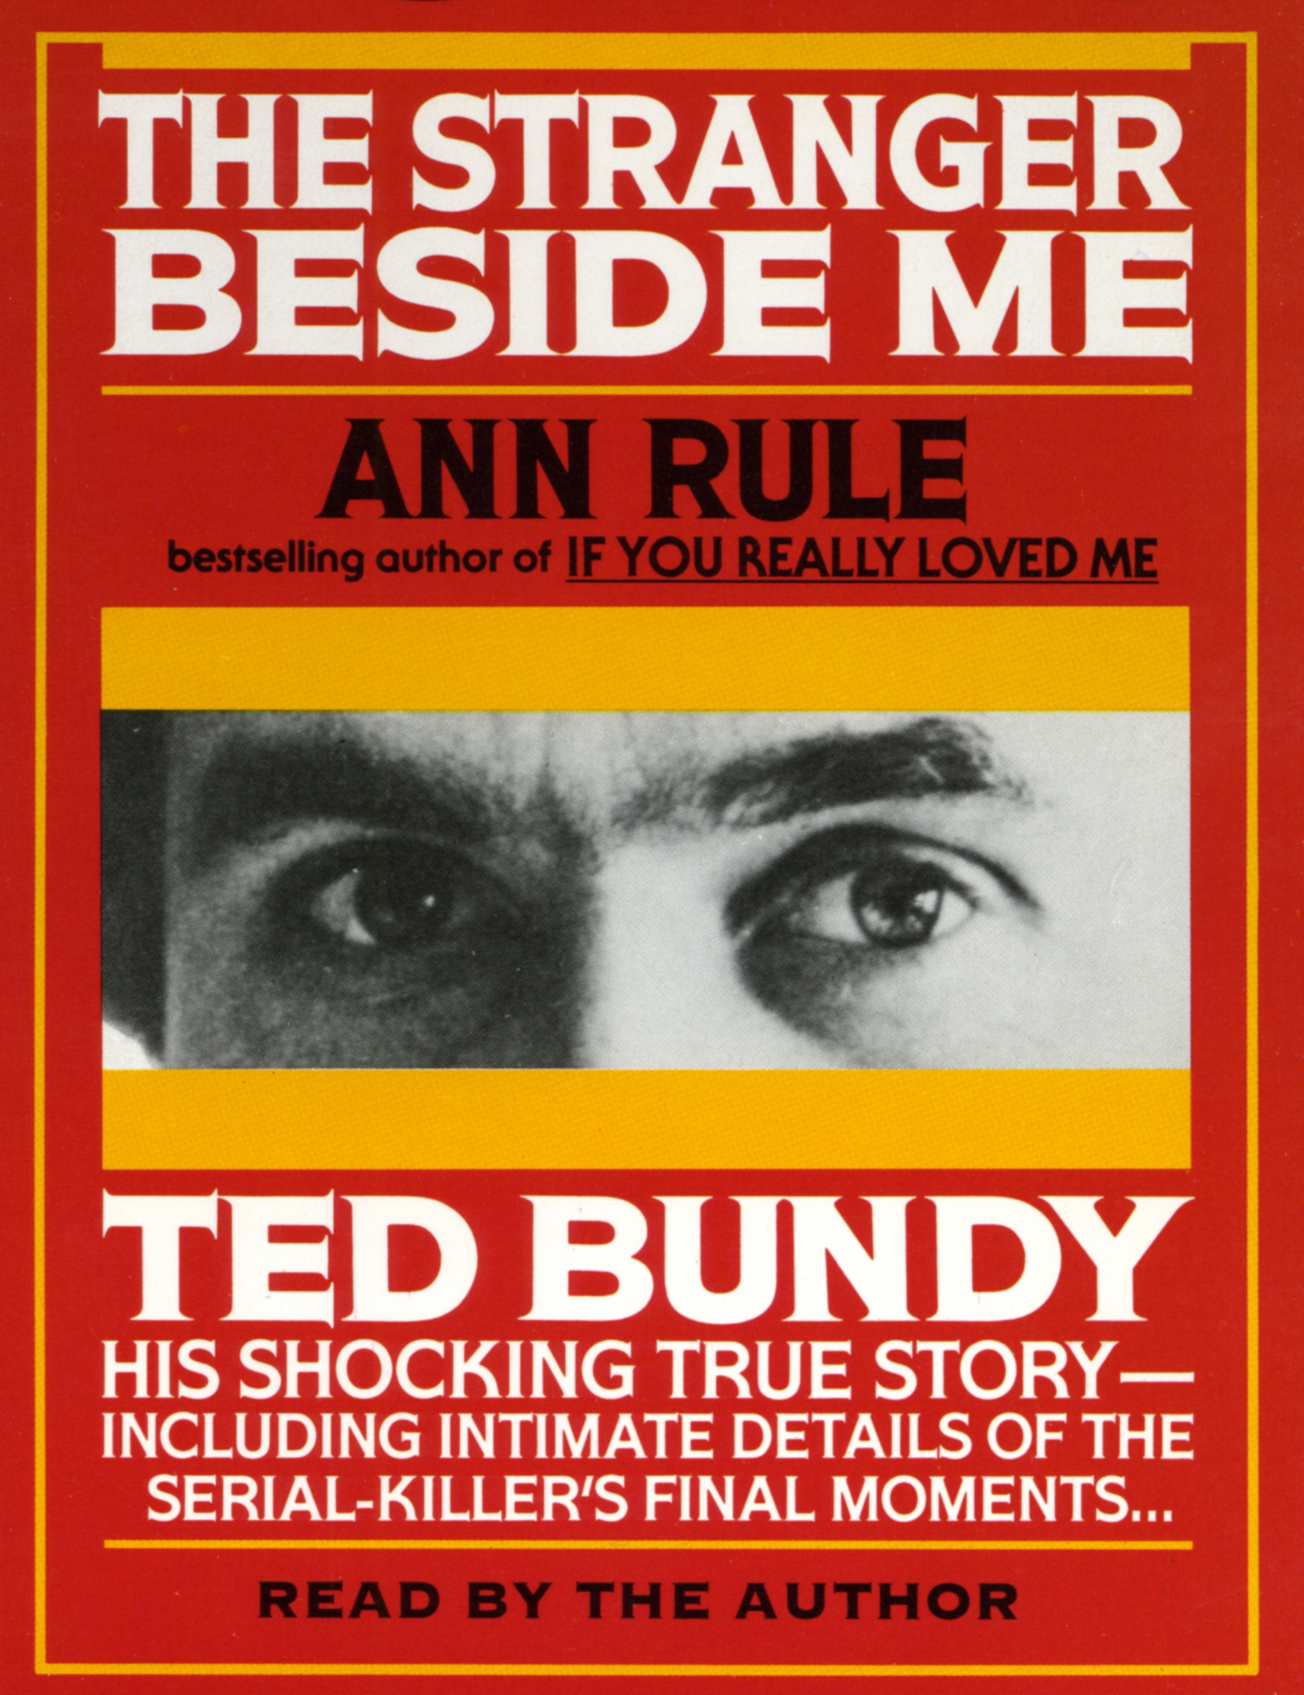 Image result for the stranger beside me by ann rule